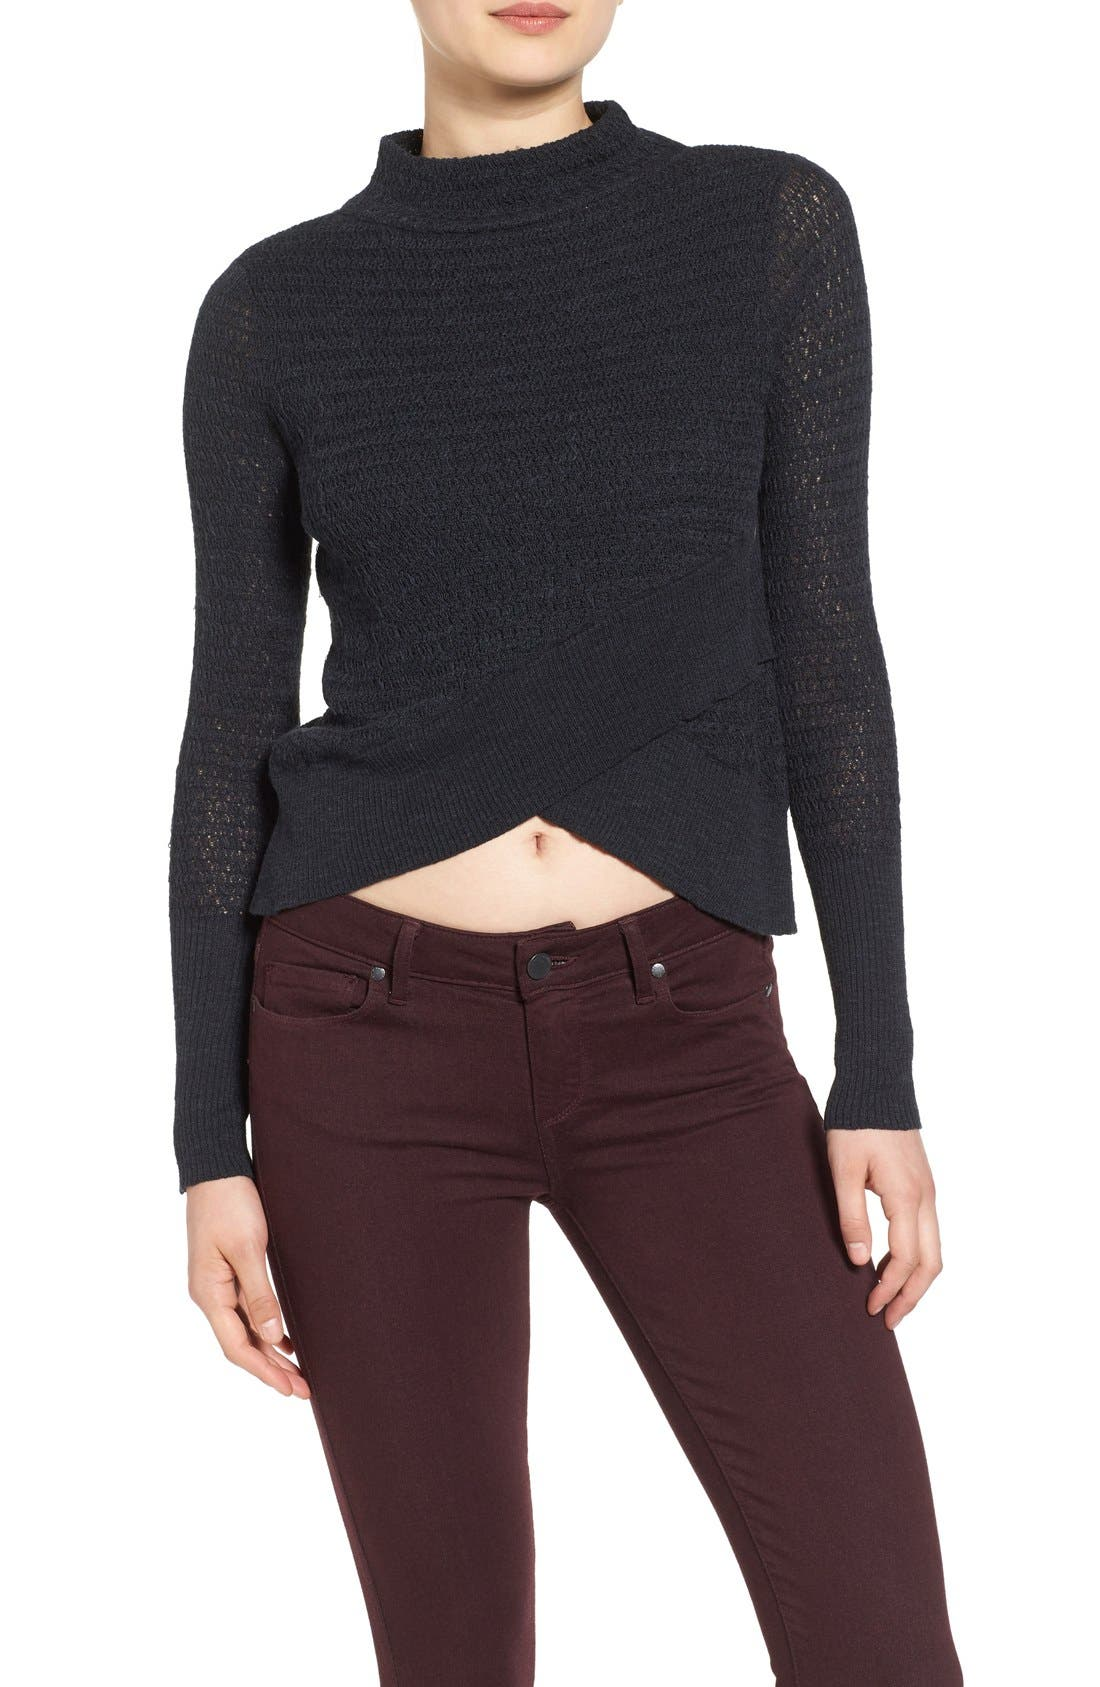 FREE PEOPLE, Crossover Sweater, Alternate thumbnail 2, color, 001